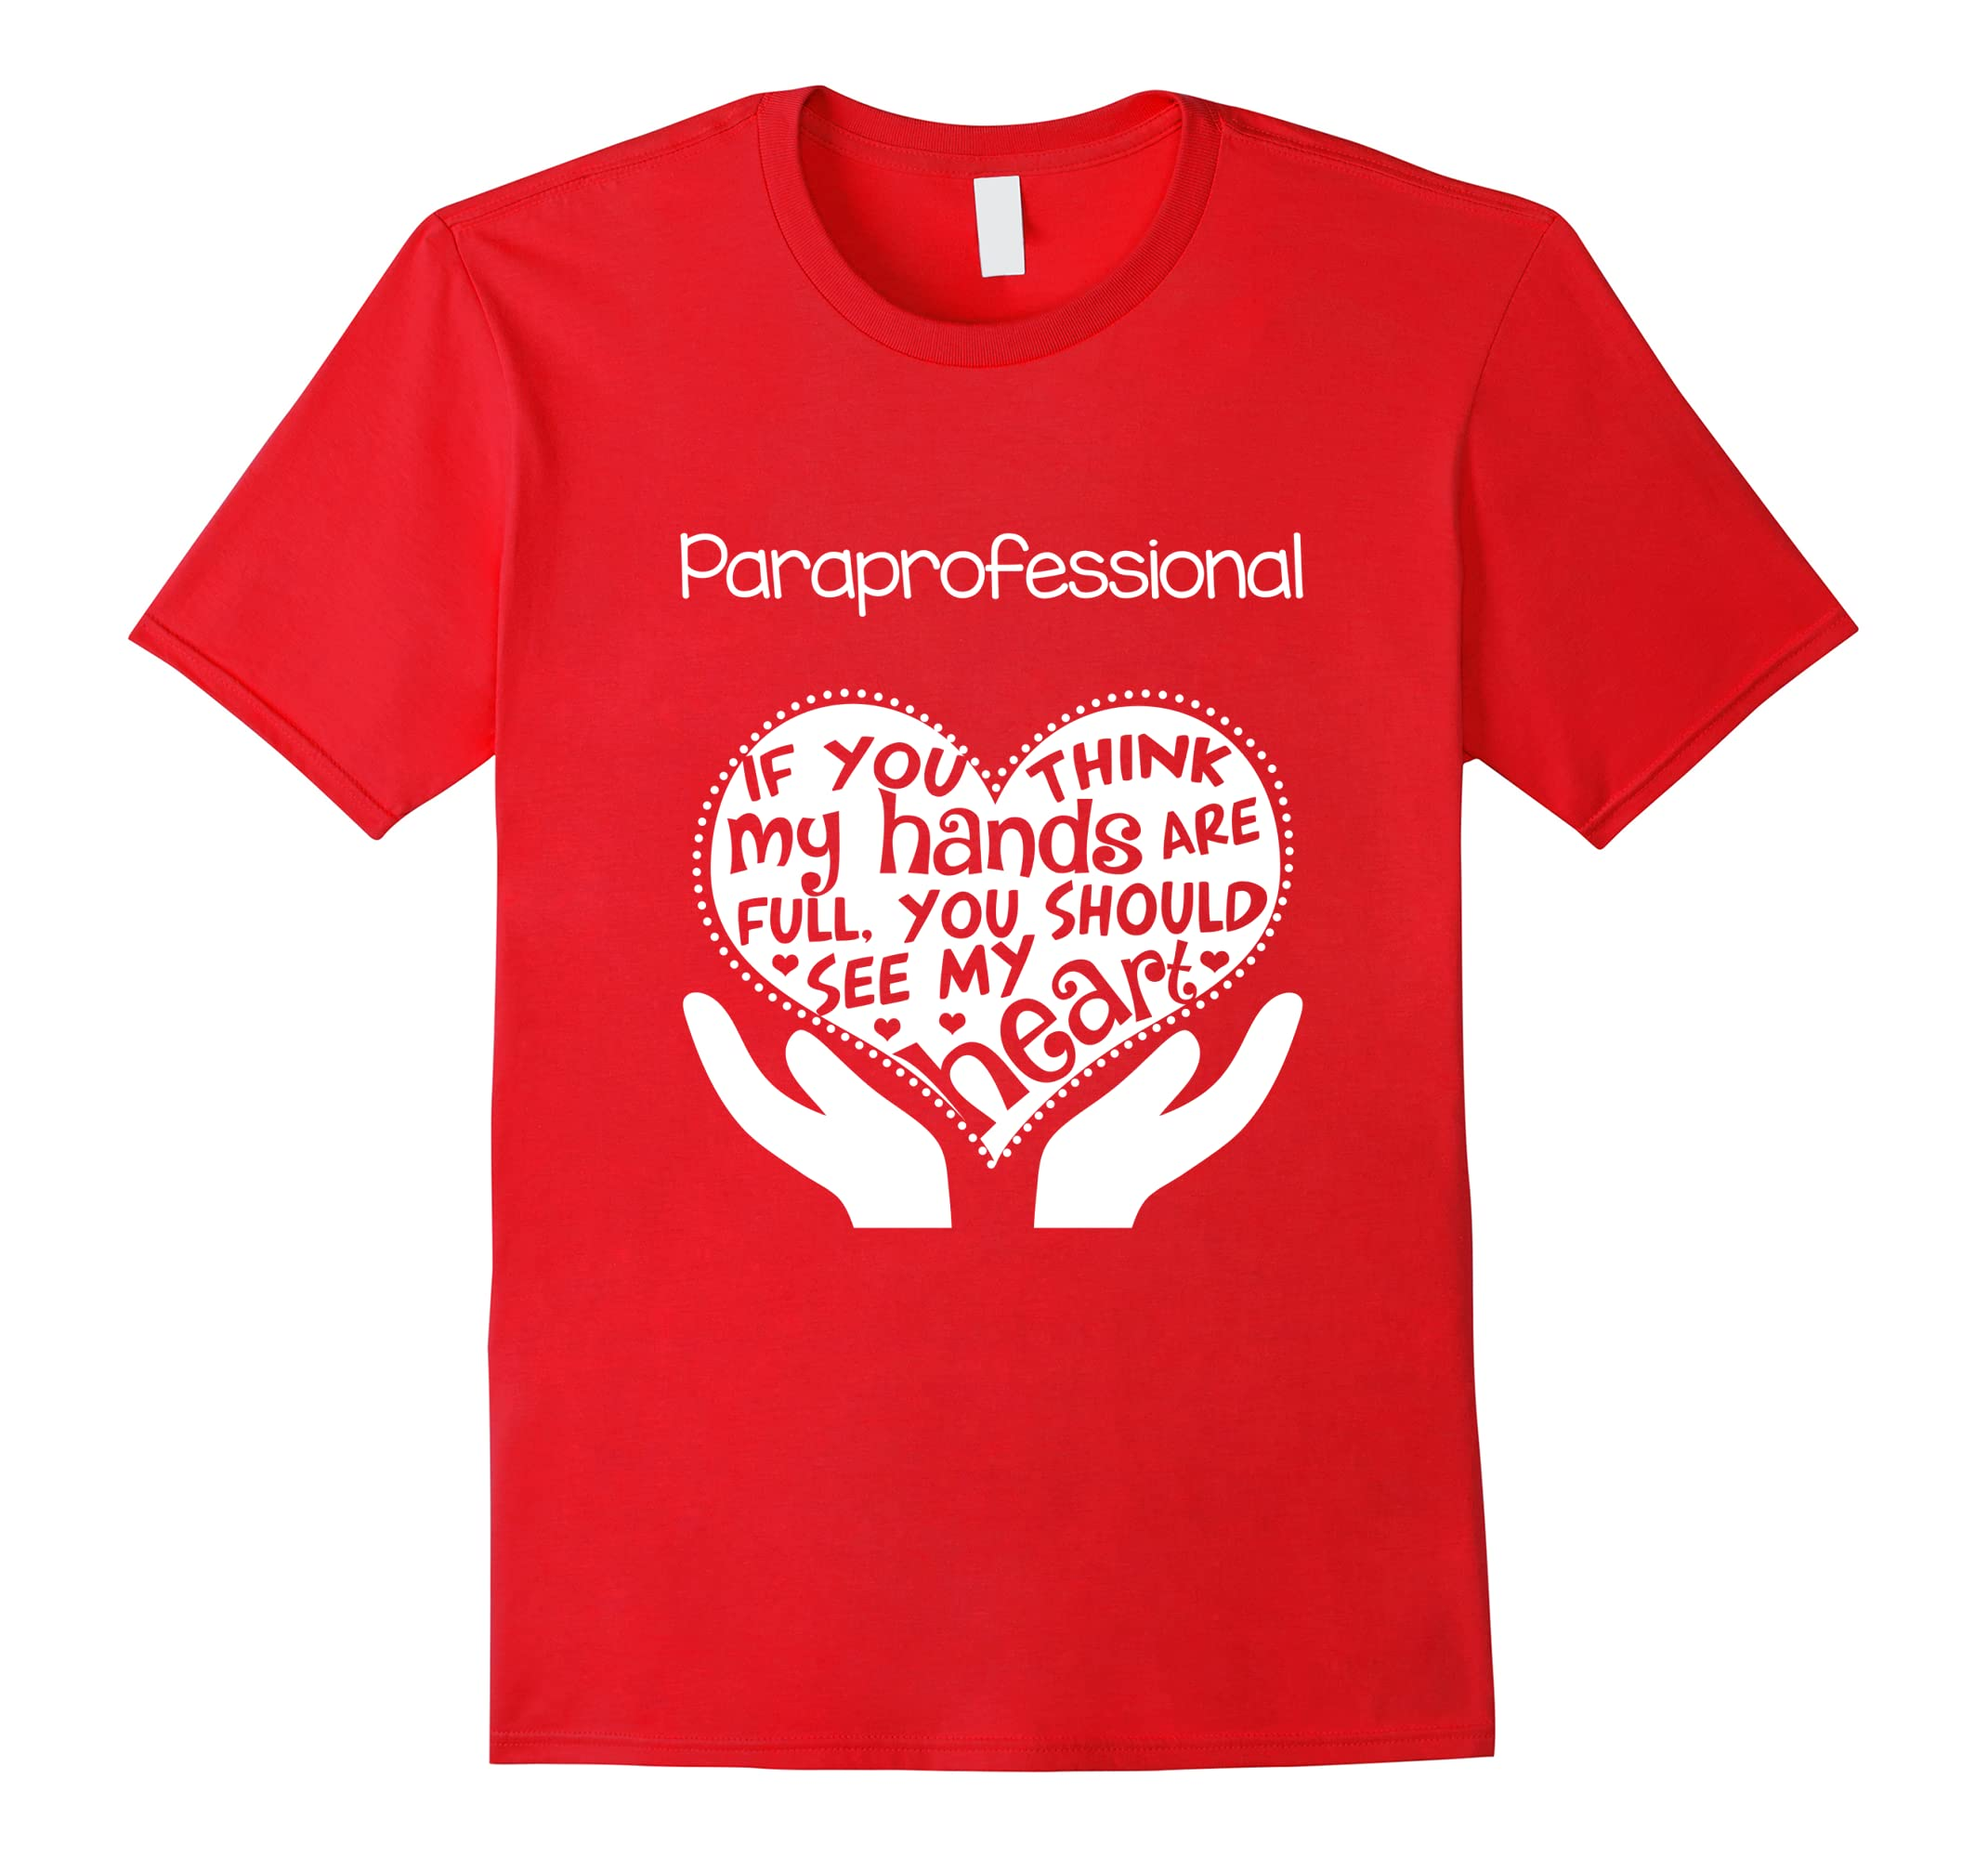 Paraprofessional Para School Heart Shirt Valentine's Day-ah my shirt one gift